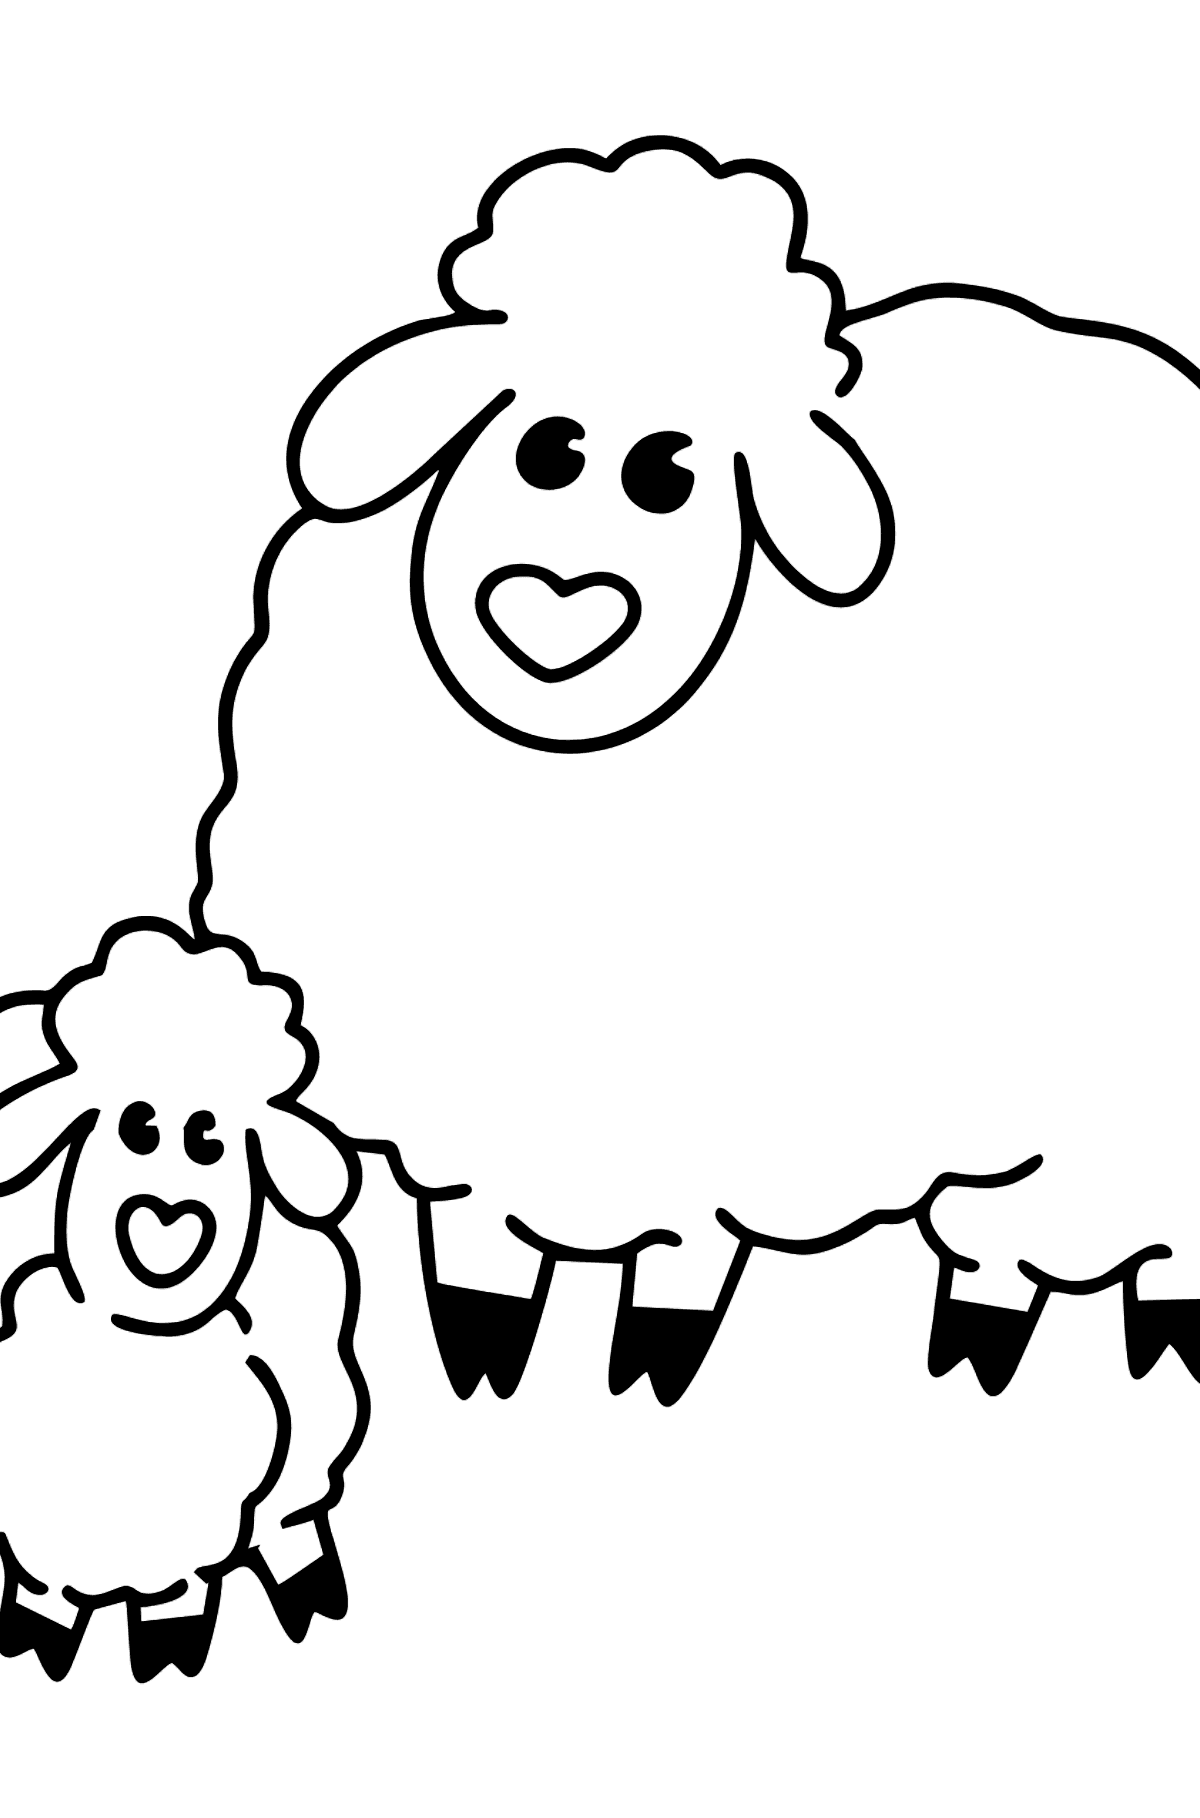 Sheep with Lamb coloring page - Coloring Pages for Kids